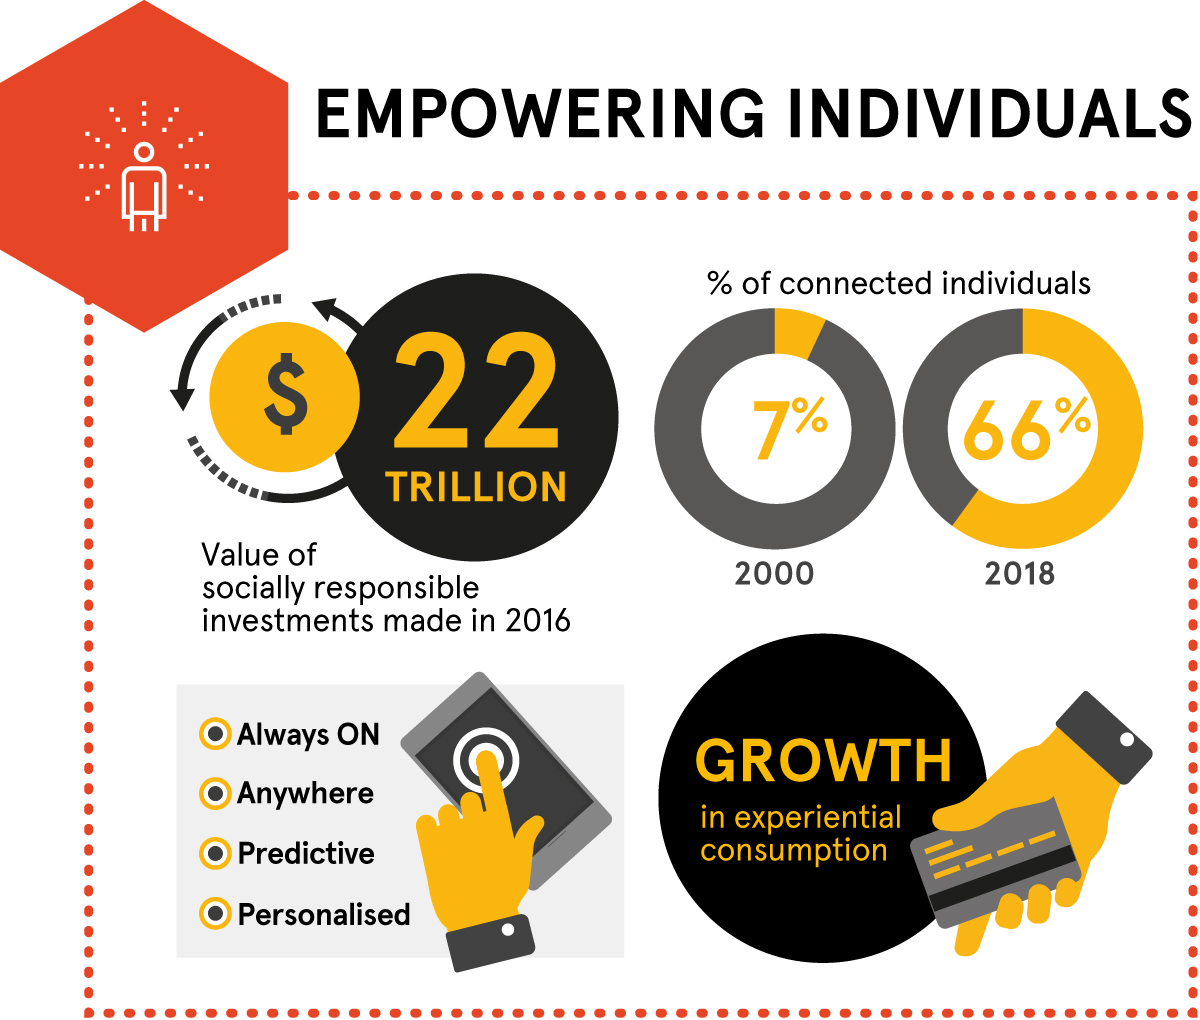 Megatrends – empowering individuals. 22 trillion: value of socially responsible investments made in 2016. Percentage of connected individuals: 2000 (7%), 2018 (66%). Always ON, anywhere, predictive, personalised. Growth in experiential consumption.